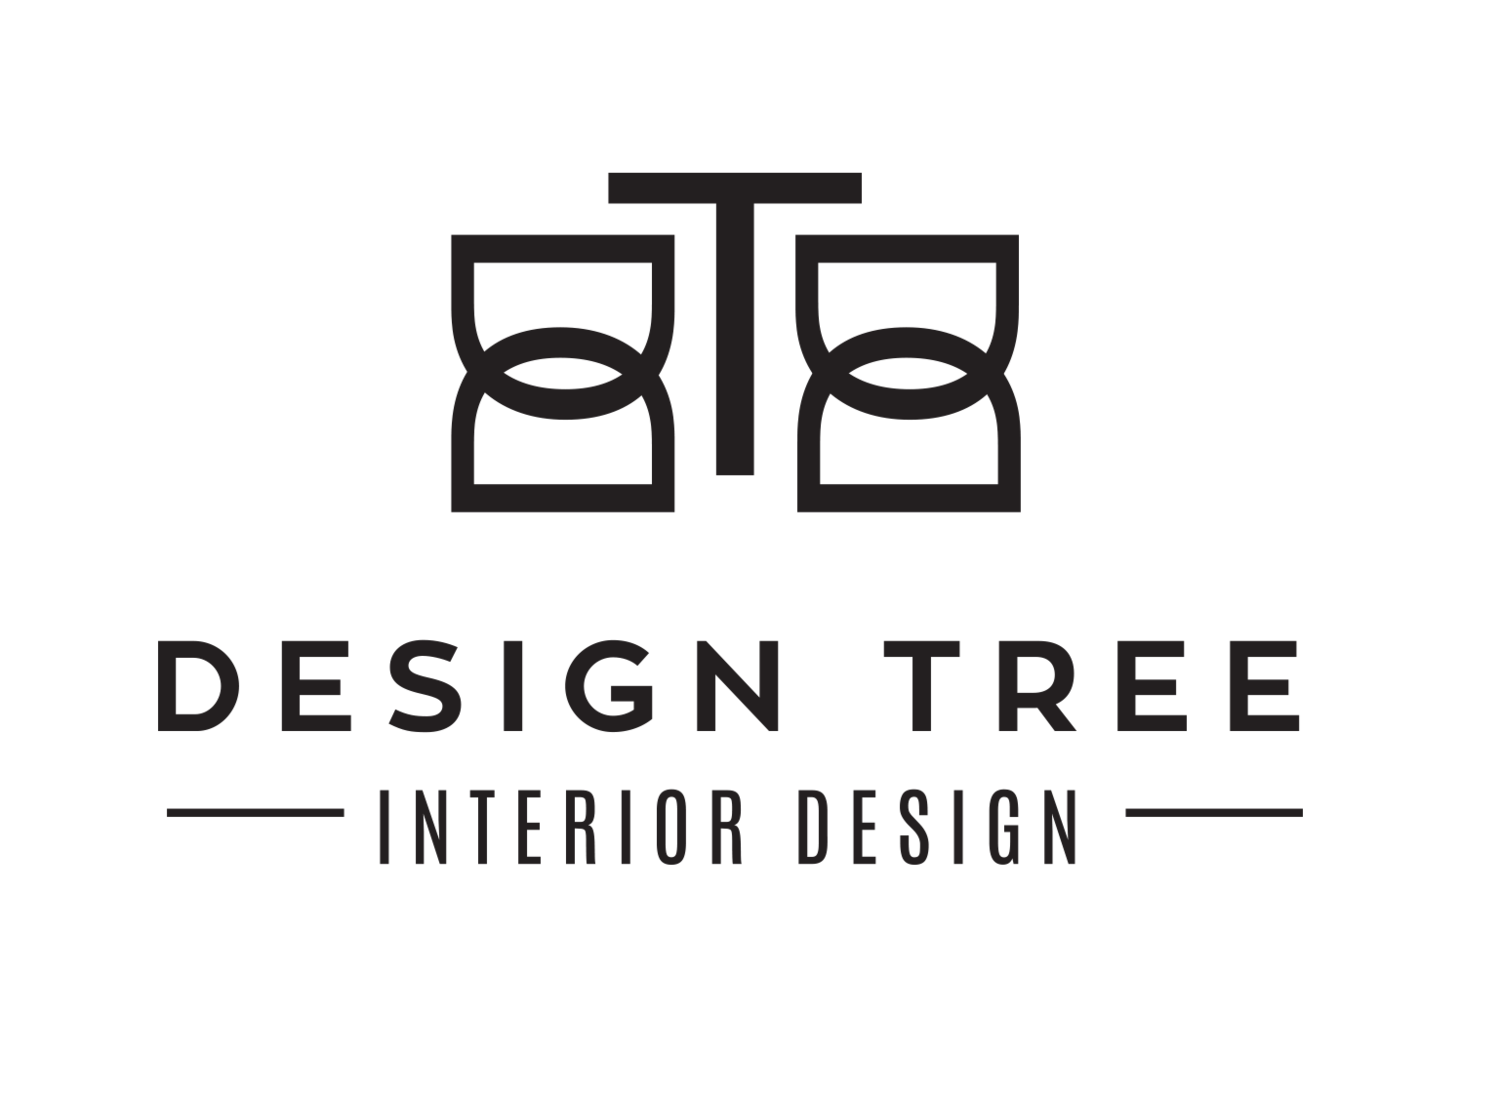 Design Tree Interiors